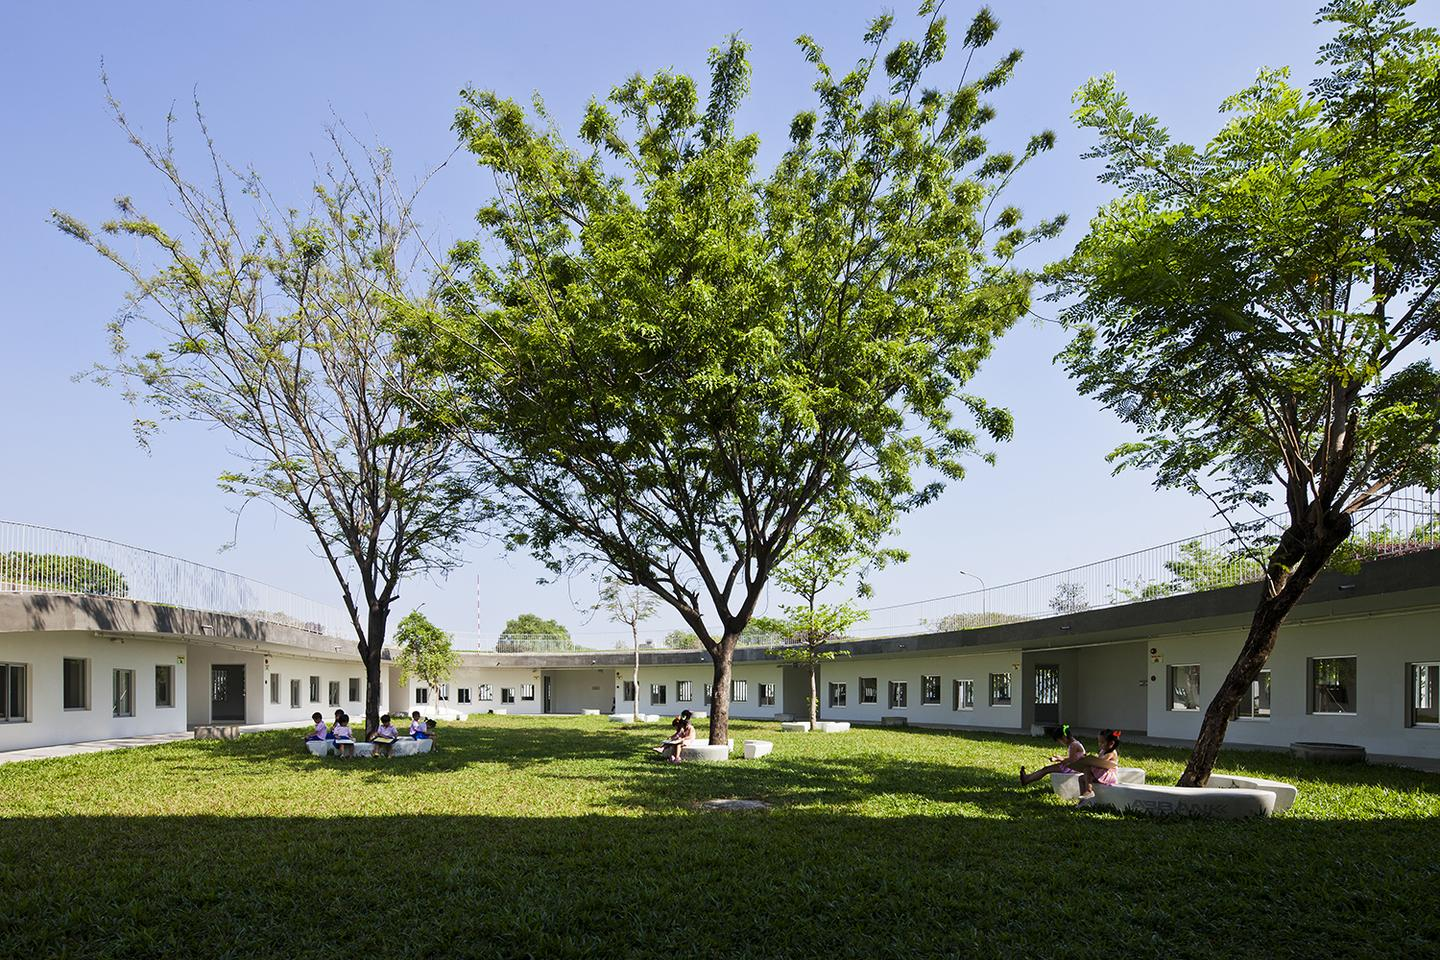 The Farming Kindergarten measures 3,800 sq m (40,902 sq ft) (Photo: Hiroyuki Oki)